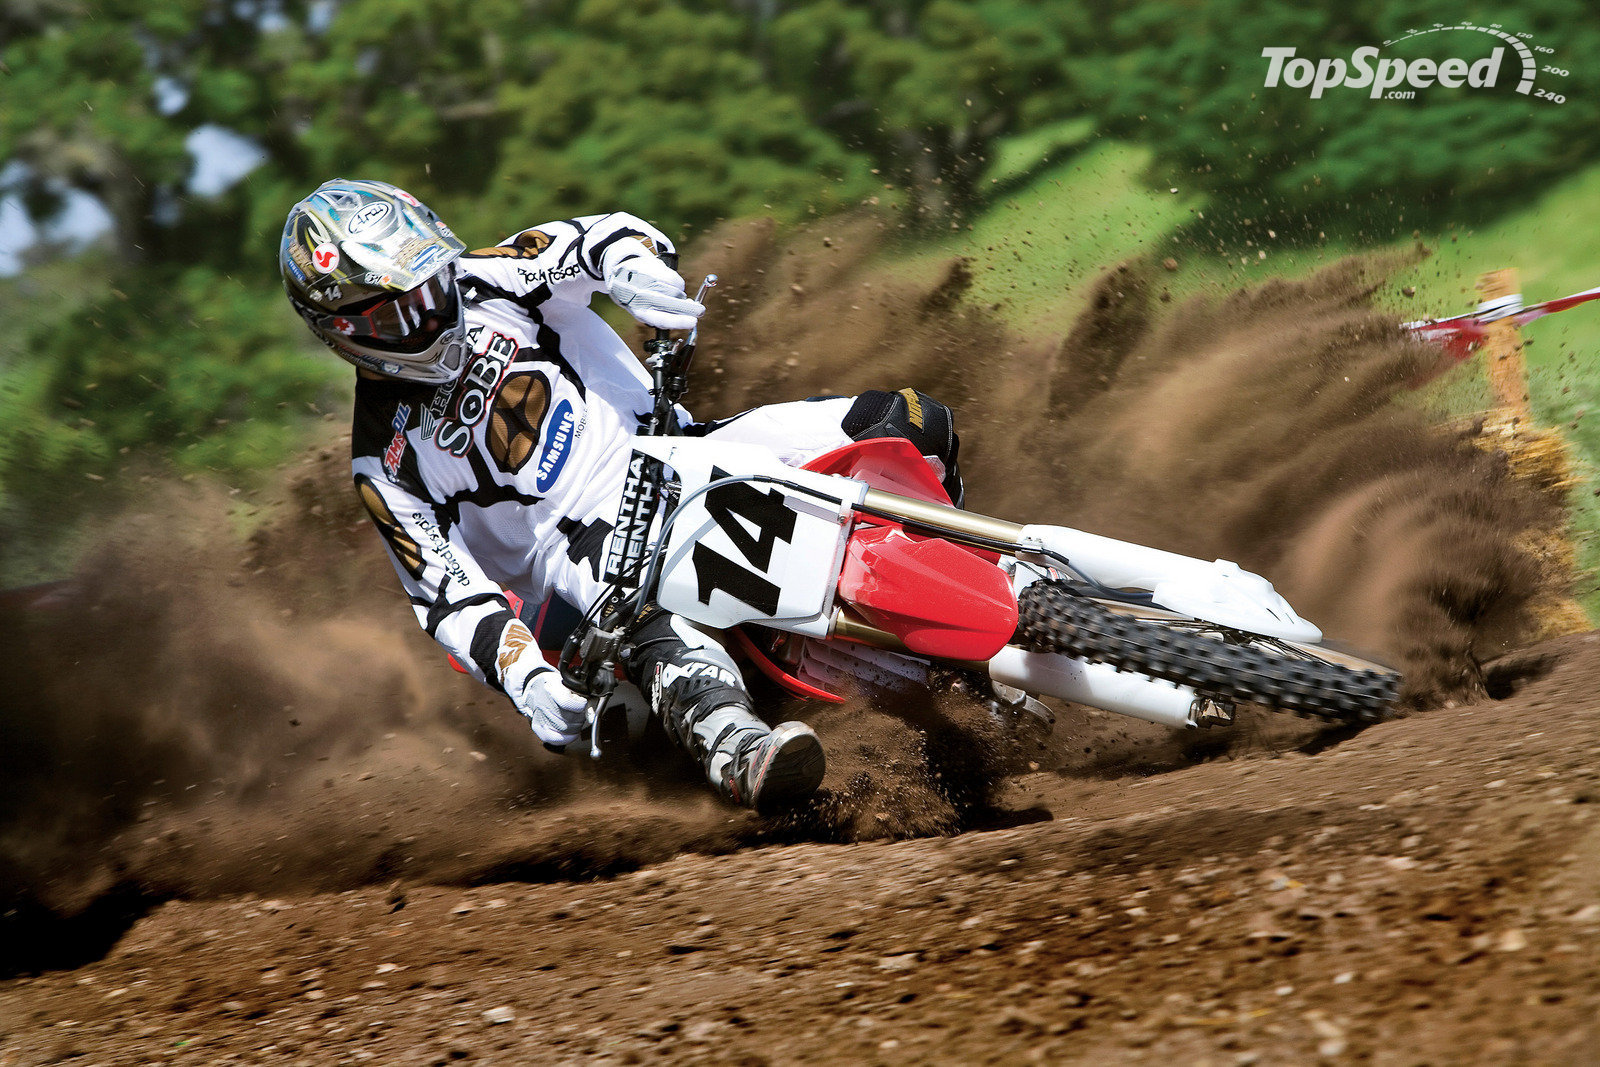 total motorcycle honda crf450r motocross. Black Bedroom Furniture Sets. Home Design Ideas